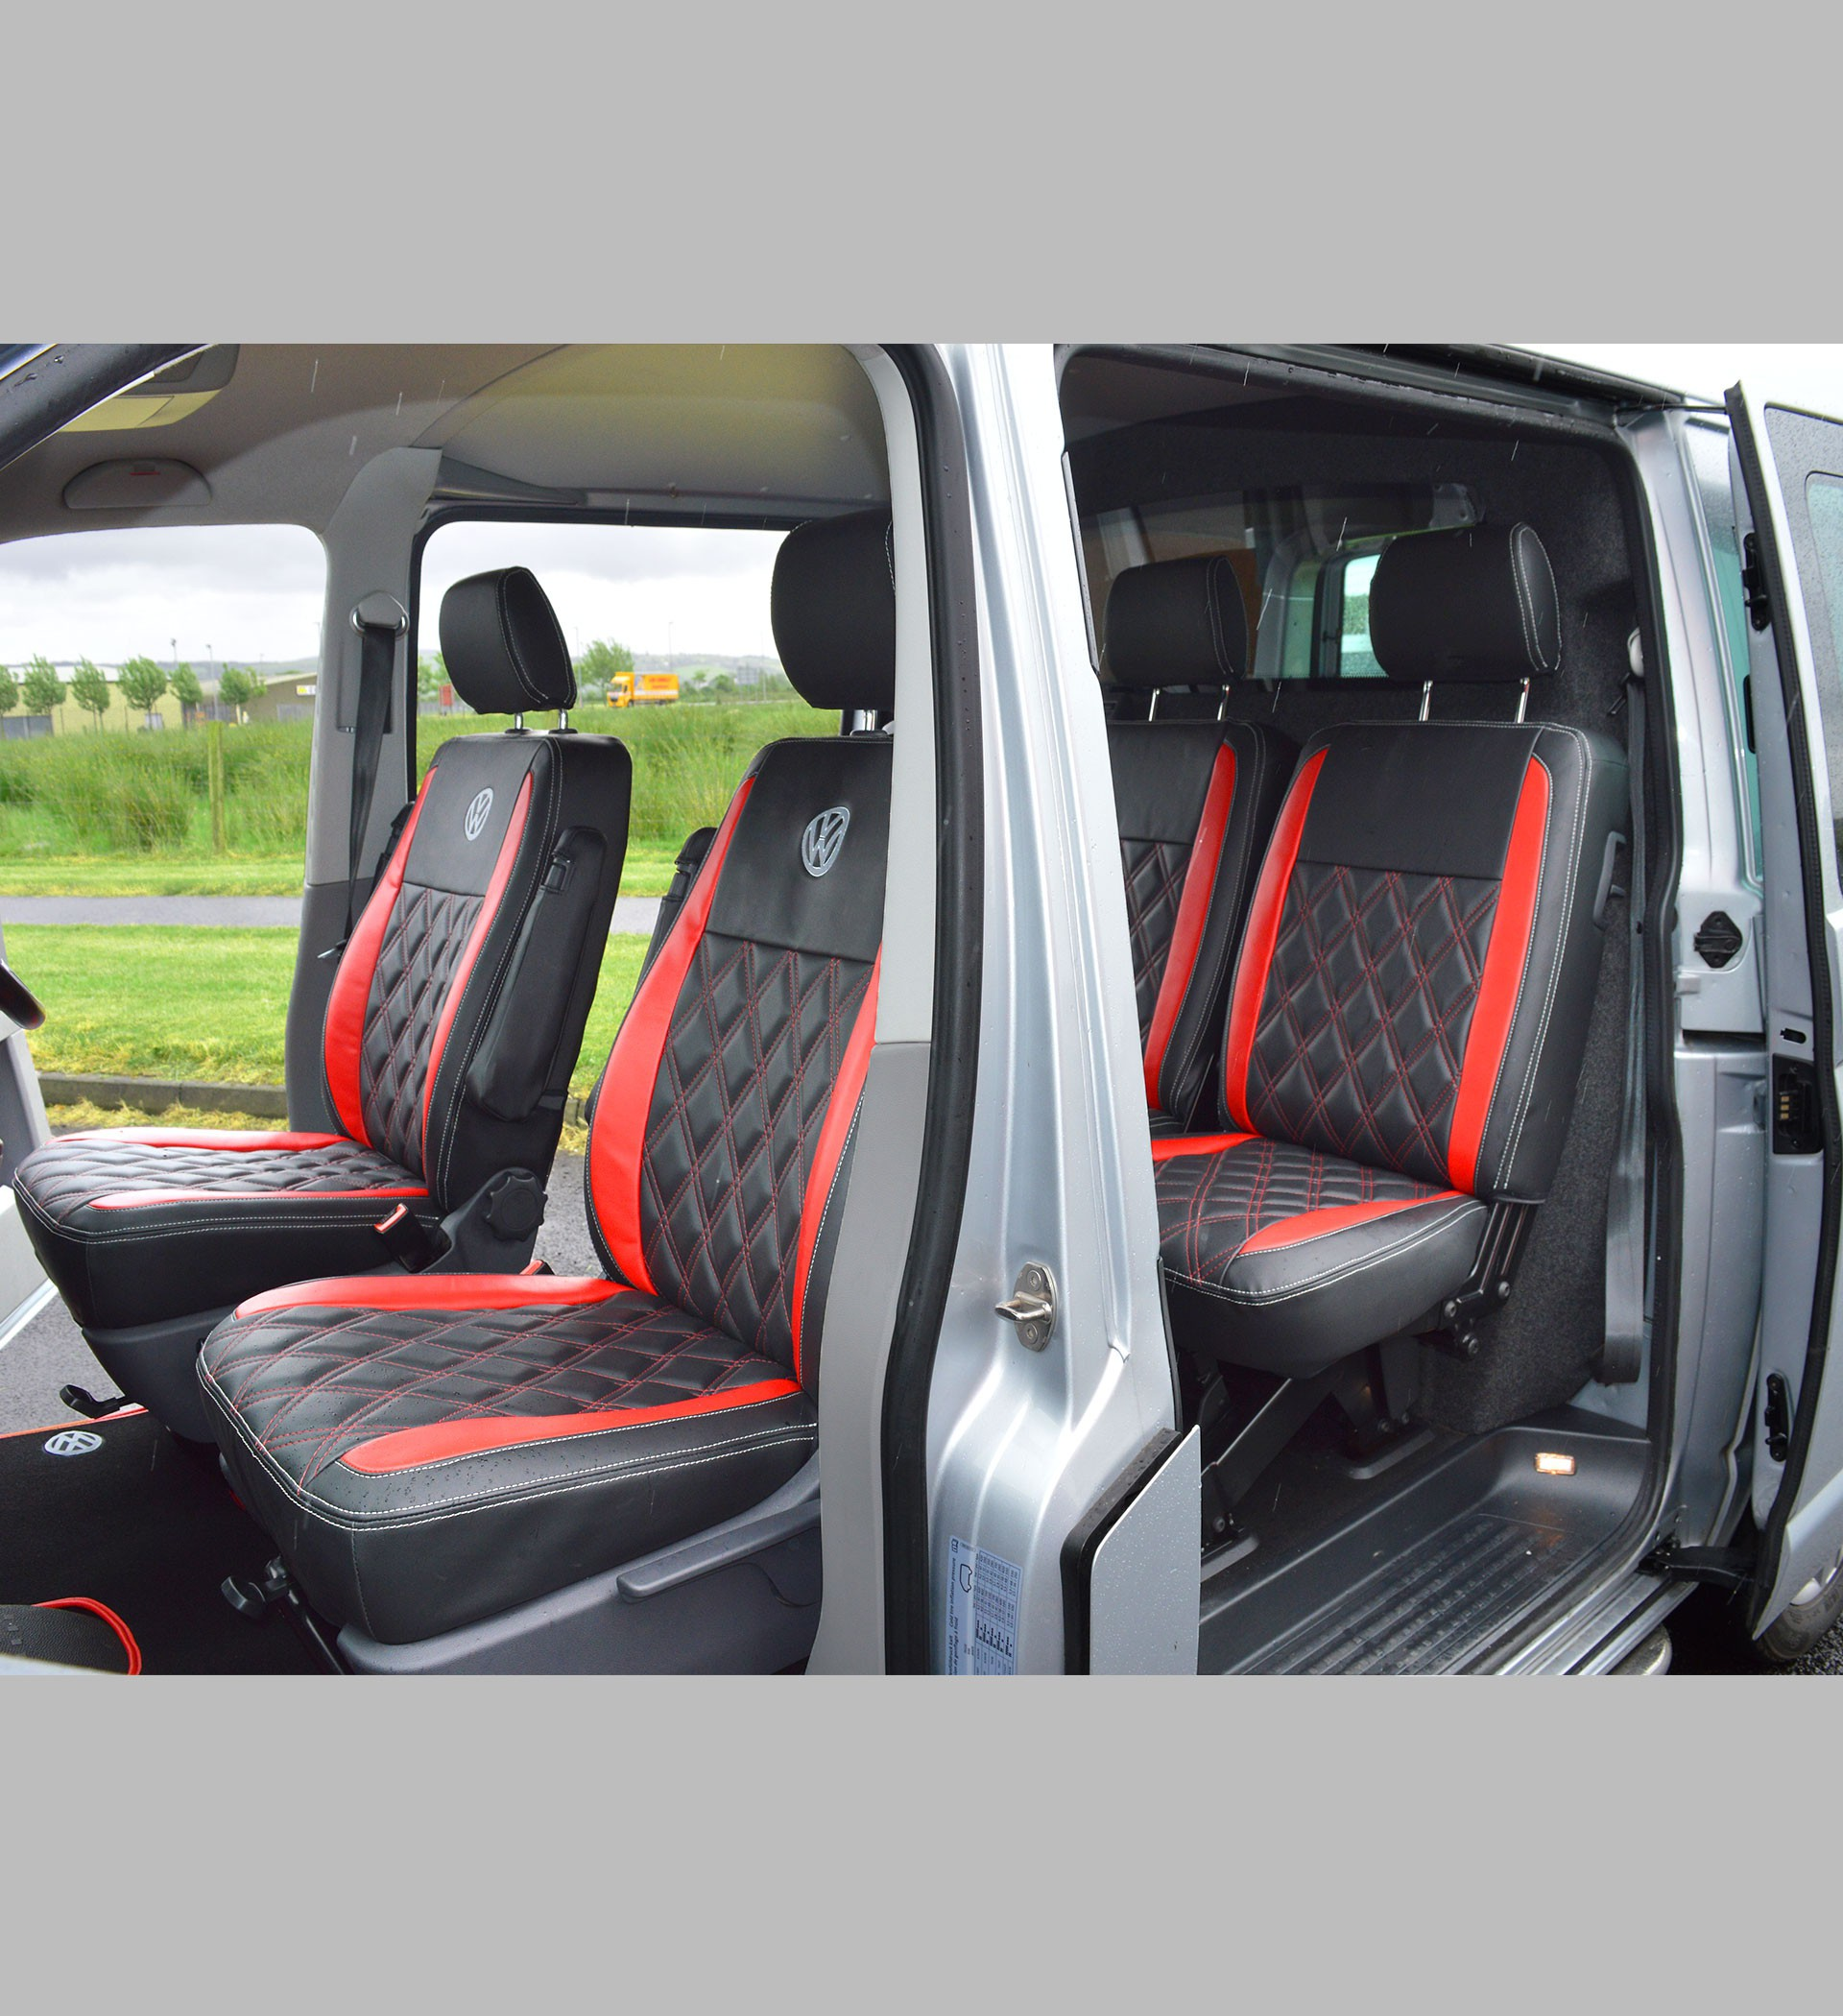 VW Transporter T6 Kombi (Captain Seats) Seat Covers Red Diamond Quilted